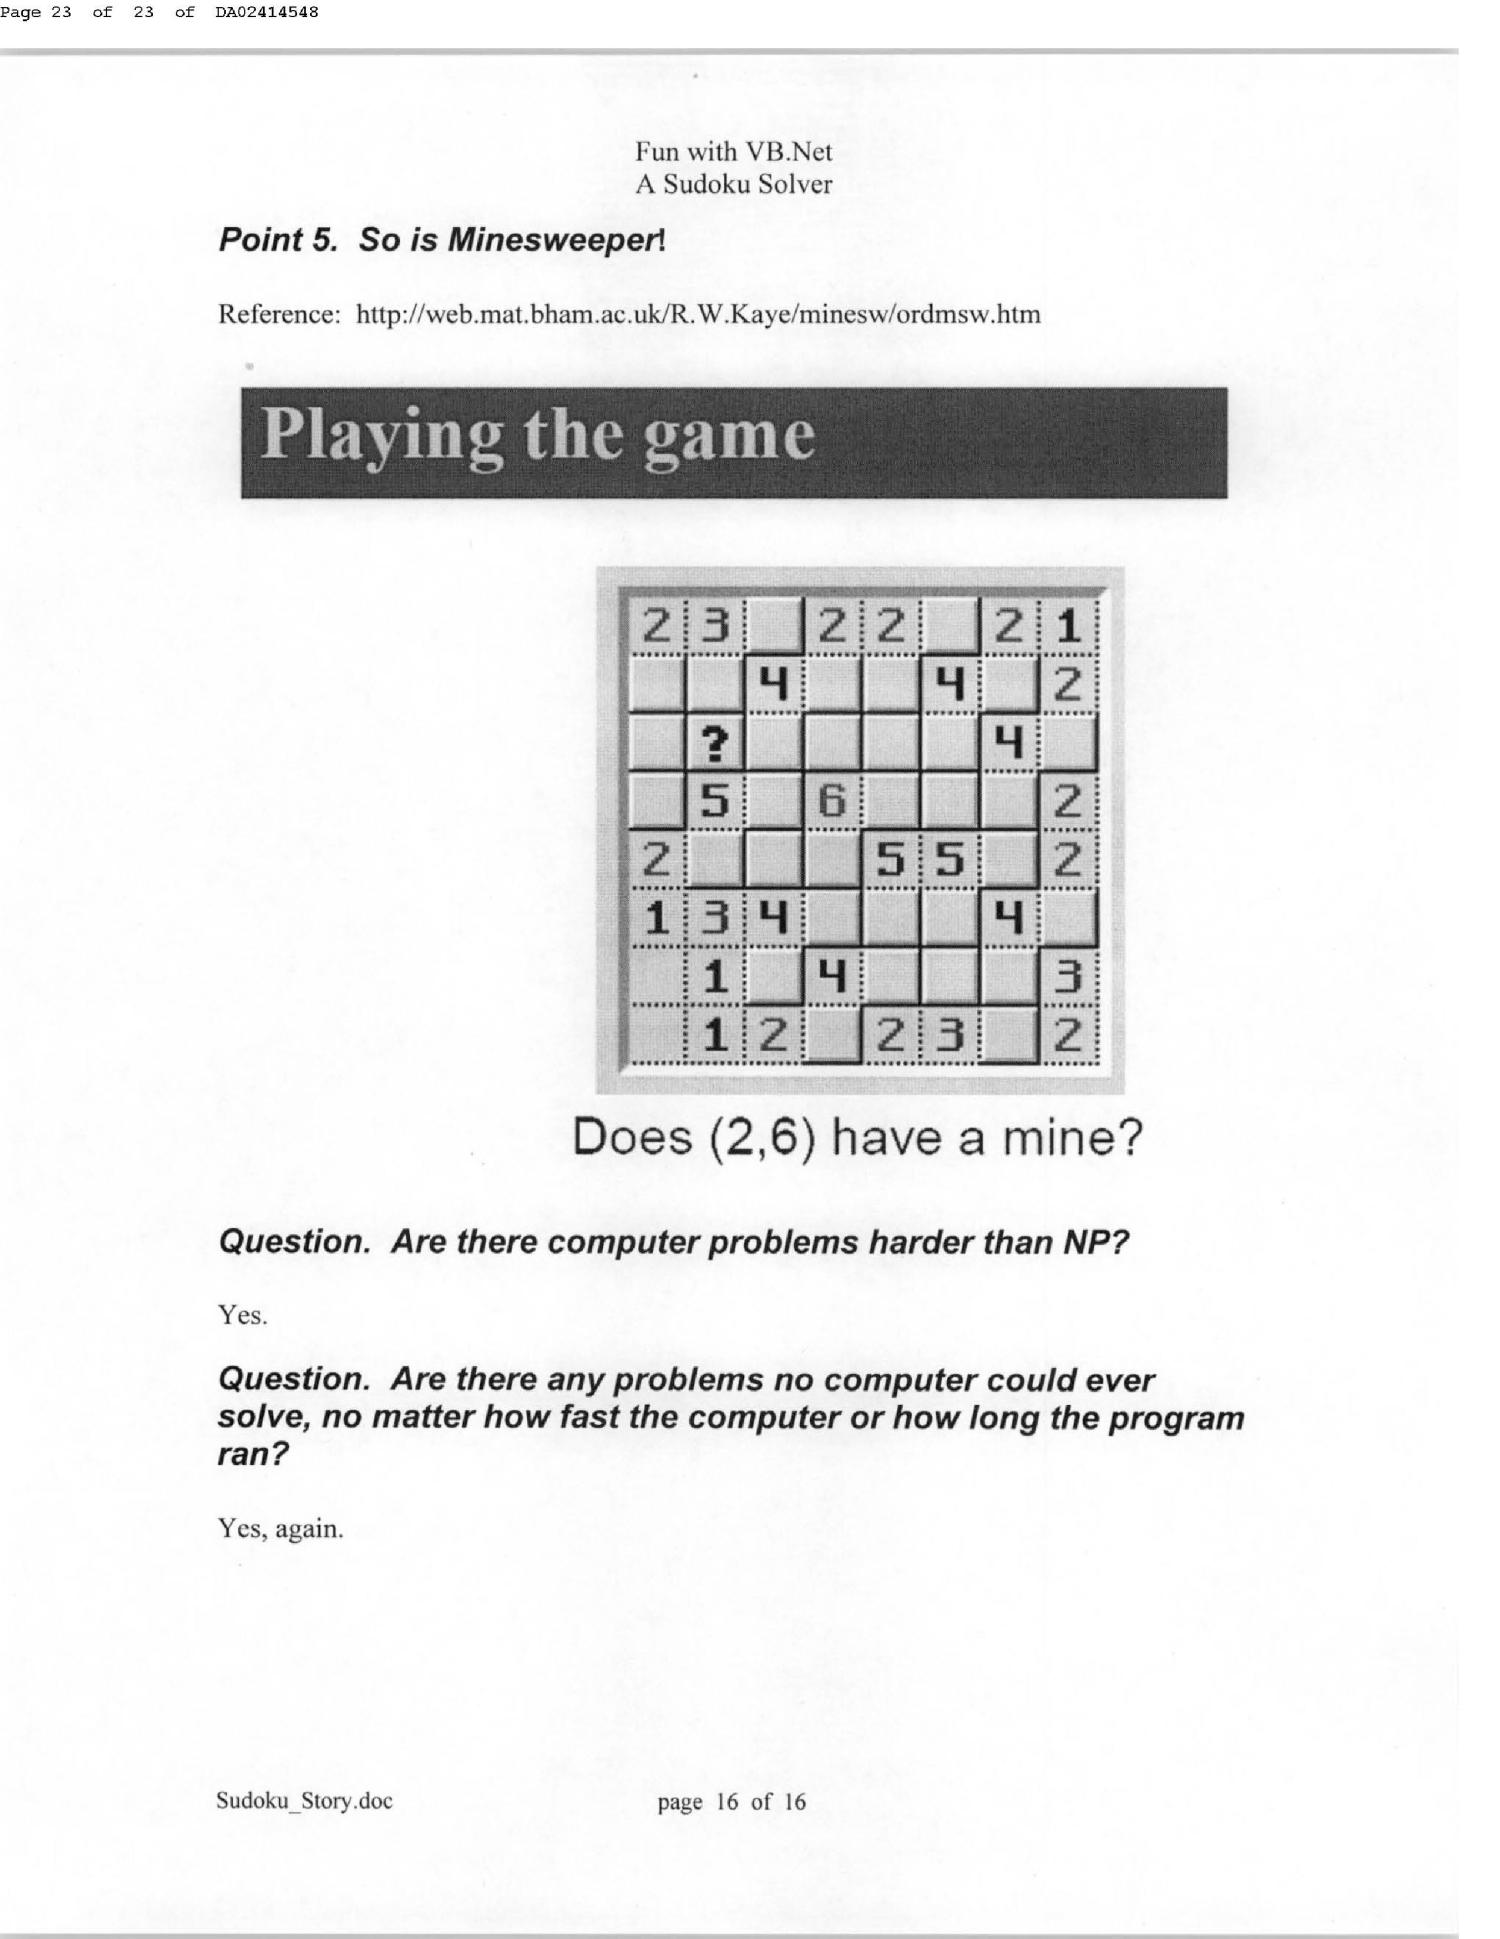 SUDOKU A STORY & A SOLVER - Page 20 of 20 - Digital Library